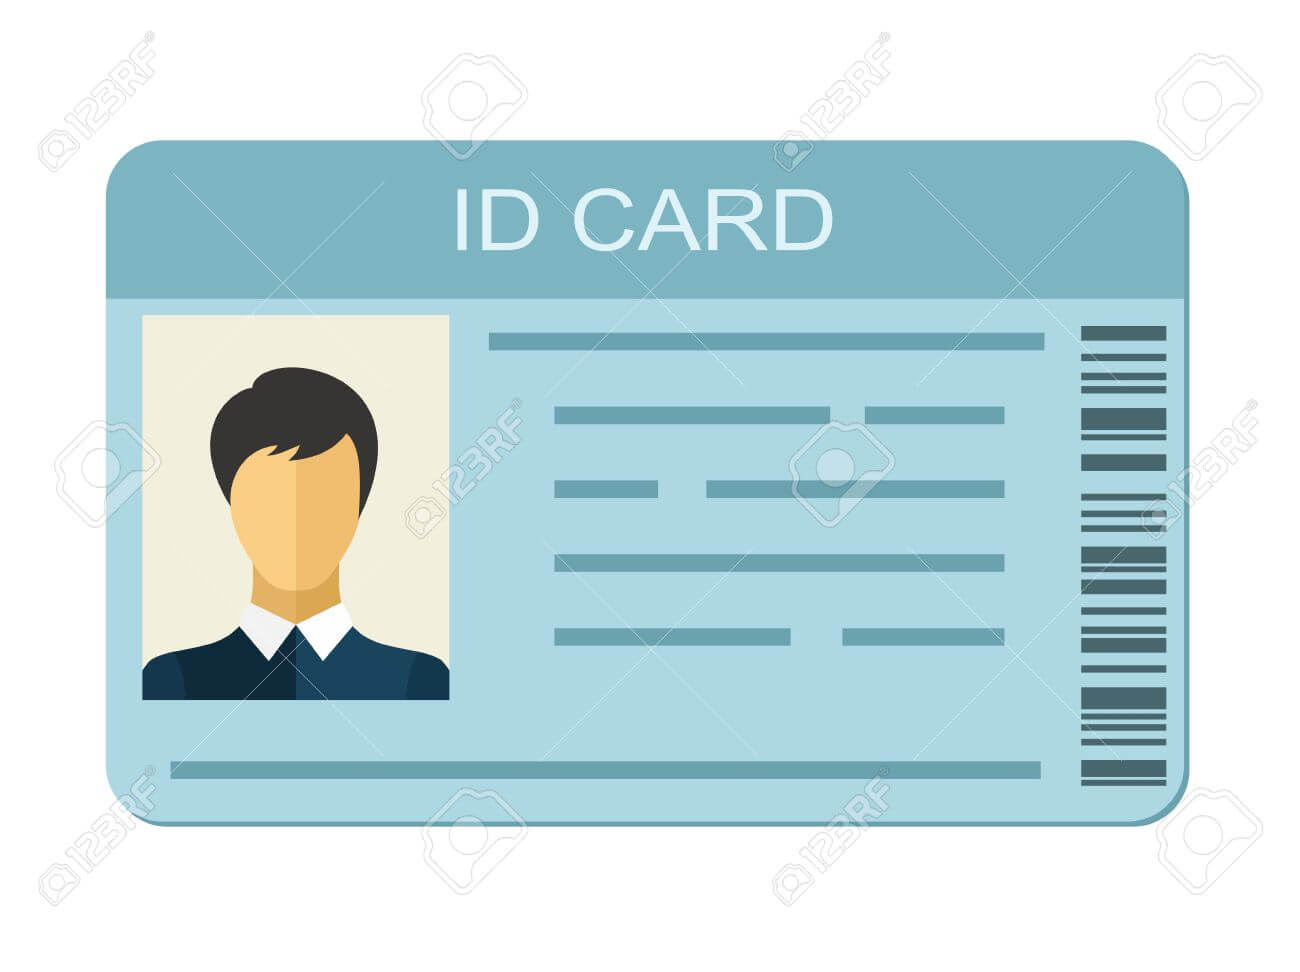 Id Card Isolated On White Background. Identification Card Icon Intended For Personal Identification Card Template